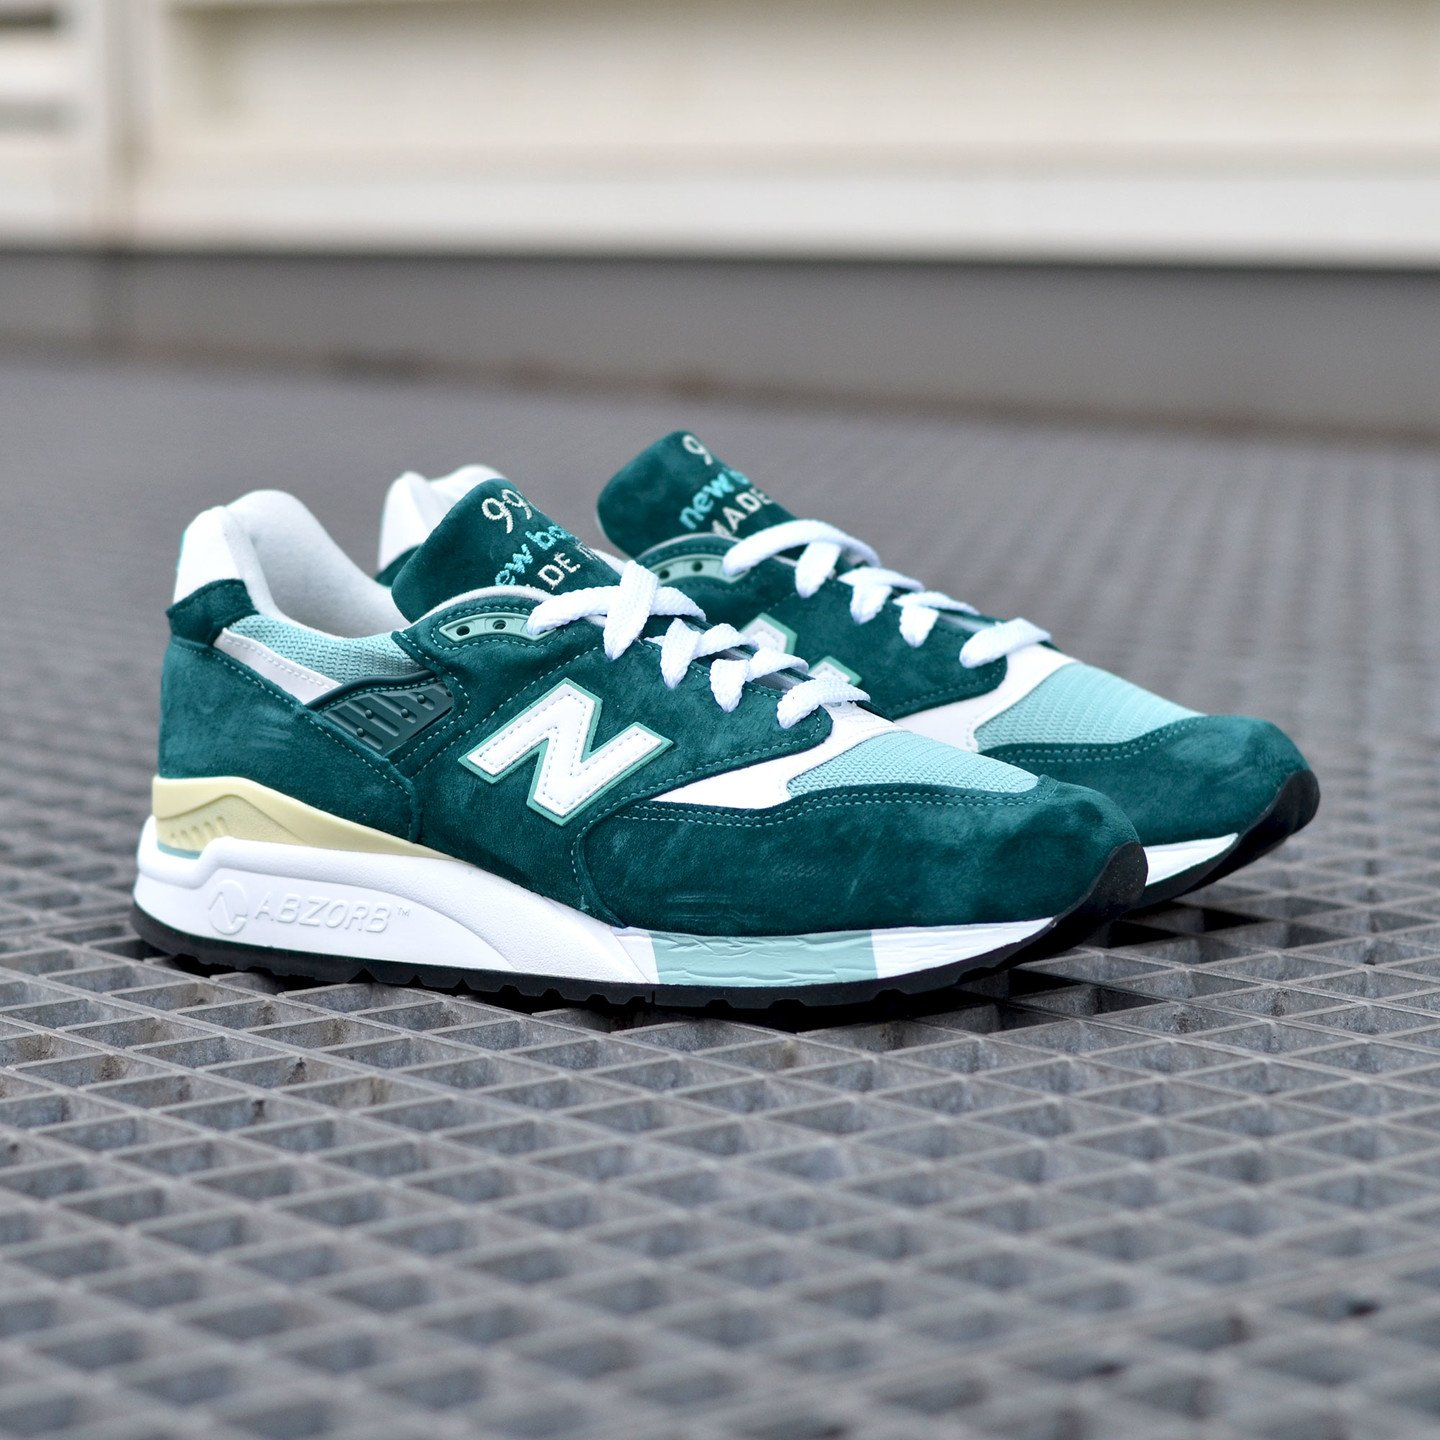 New Balance M998 Made in USA Sea Green / White M998CSAM-45